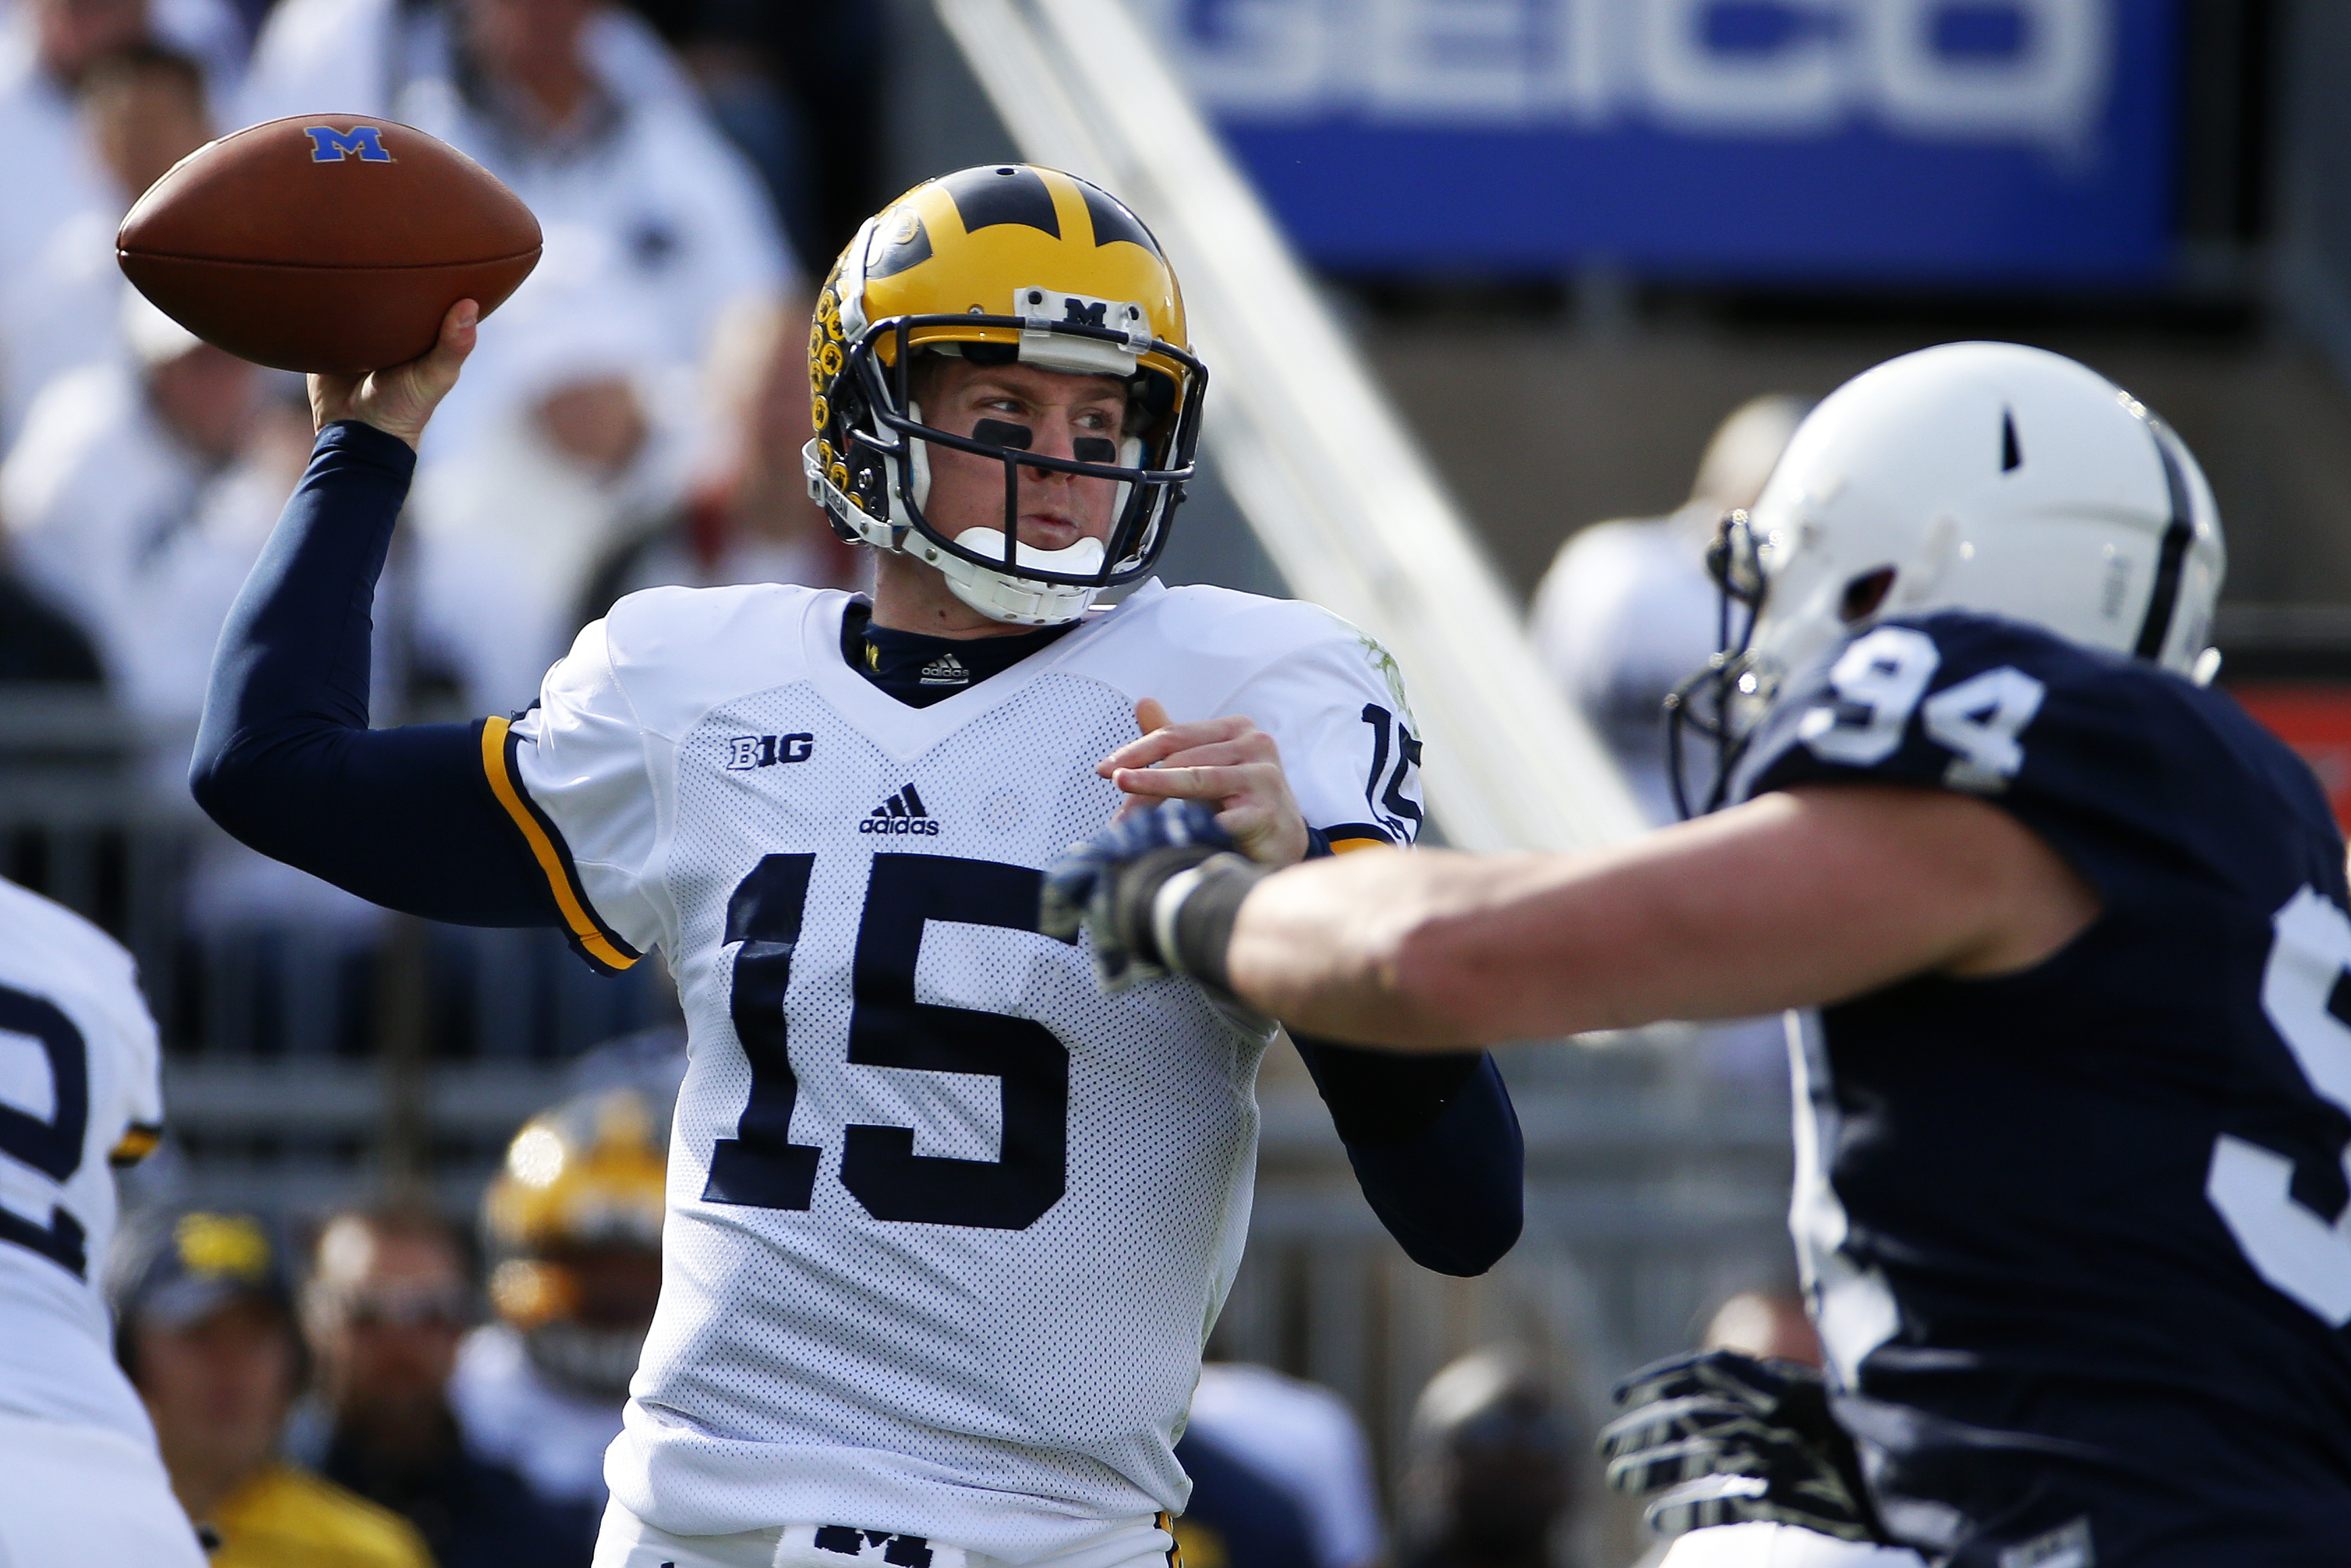 Michigan quarterback Jake Rudock (15) passes under pressure by Penn State defensive end Evan Schwan (94) during the first half of an NCAA college football game in State College, Pa., Saturday, Nov. 21, 2015. (AP Photo/Gene J. Puskar)